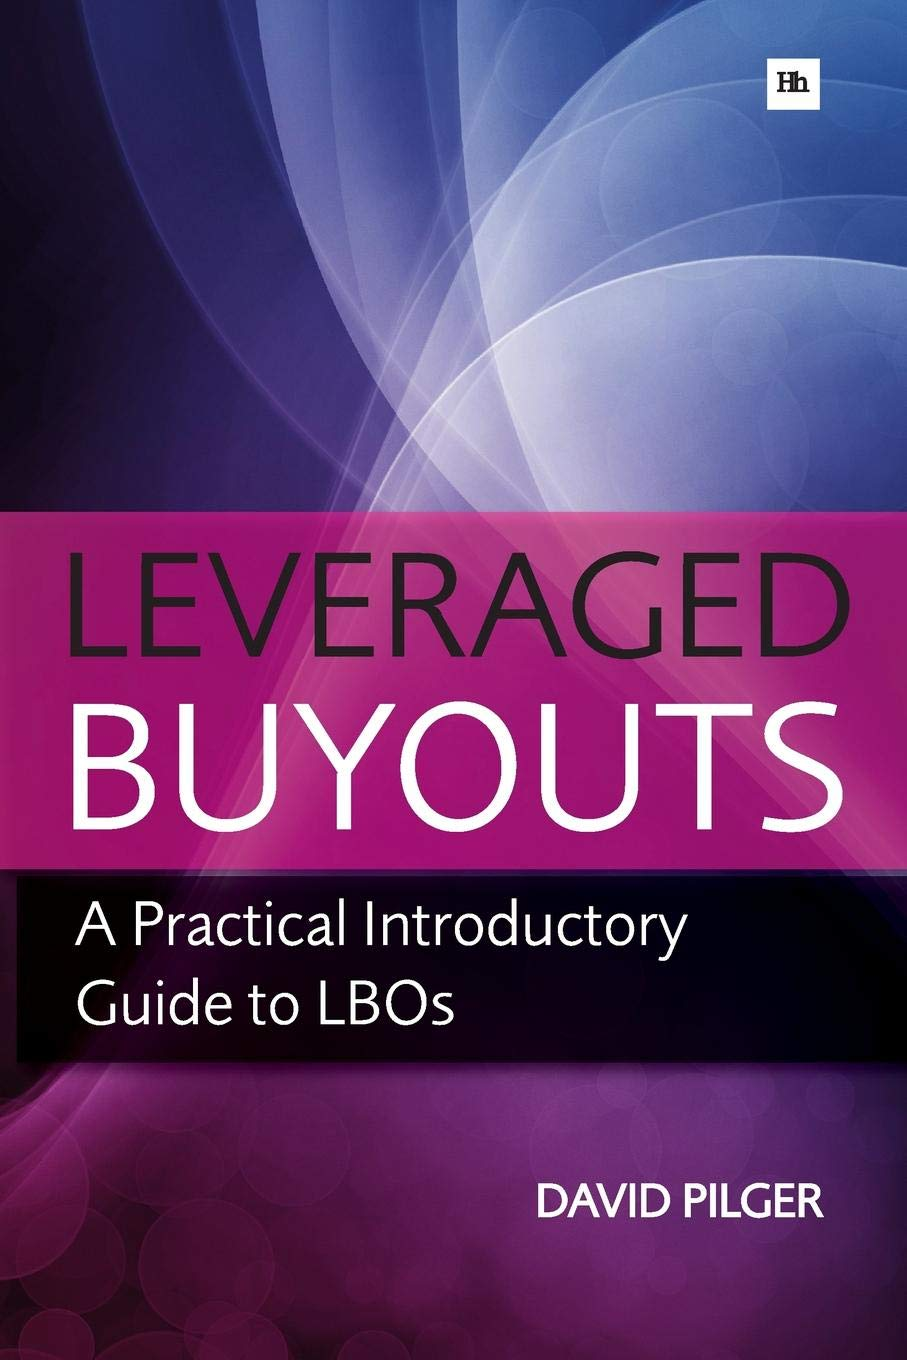 Synonyms and antonyms of leveraged buyout in the English dictionary of synonyms